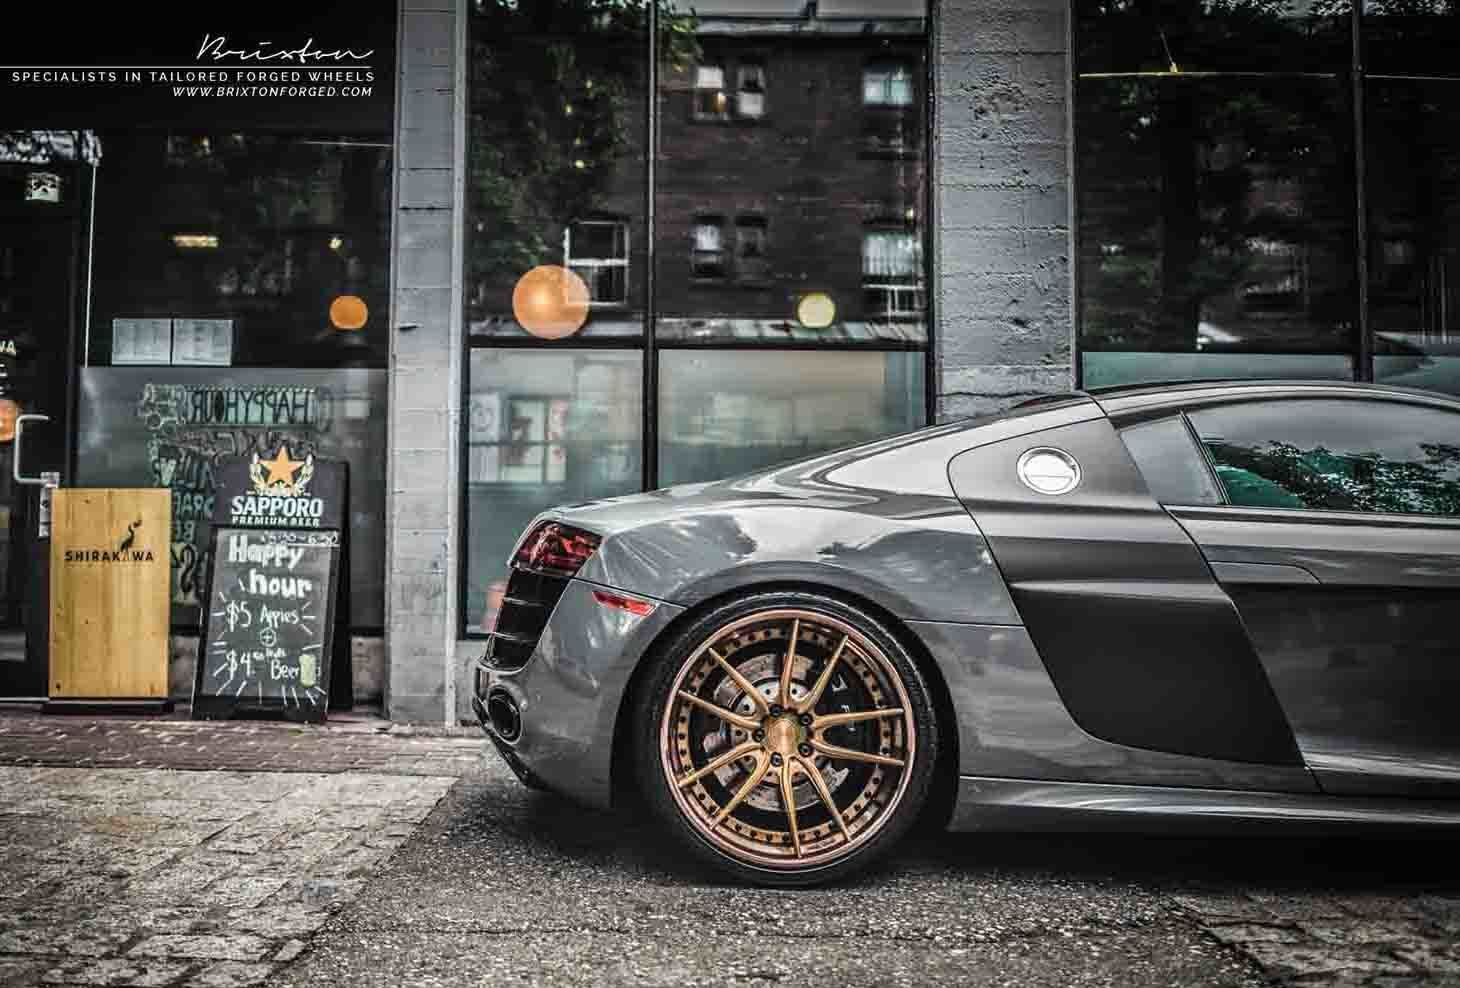 images-products-1-2293-232974581-brixton-forged-m53-targa-series-audi-r8-v10-grey-20-inch-super-concave-3-piece-brushed-bronze-03.jpg